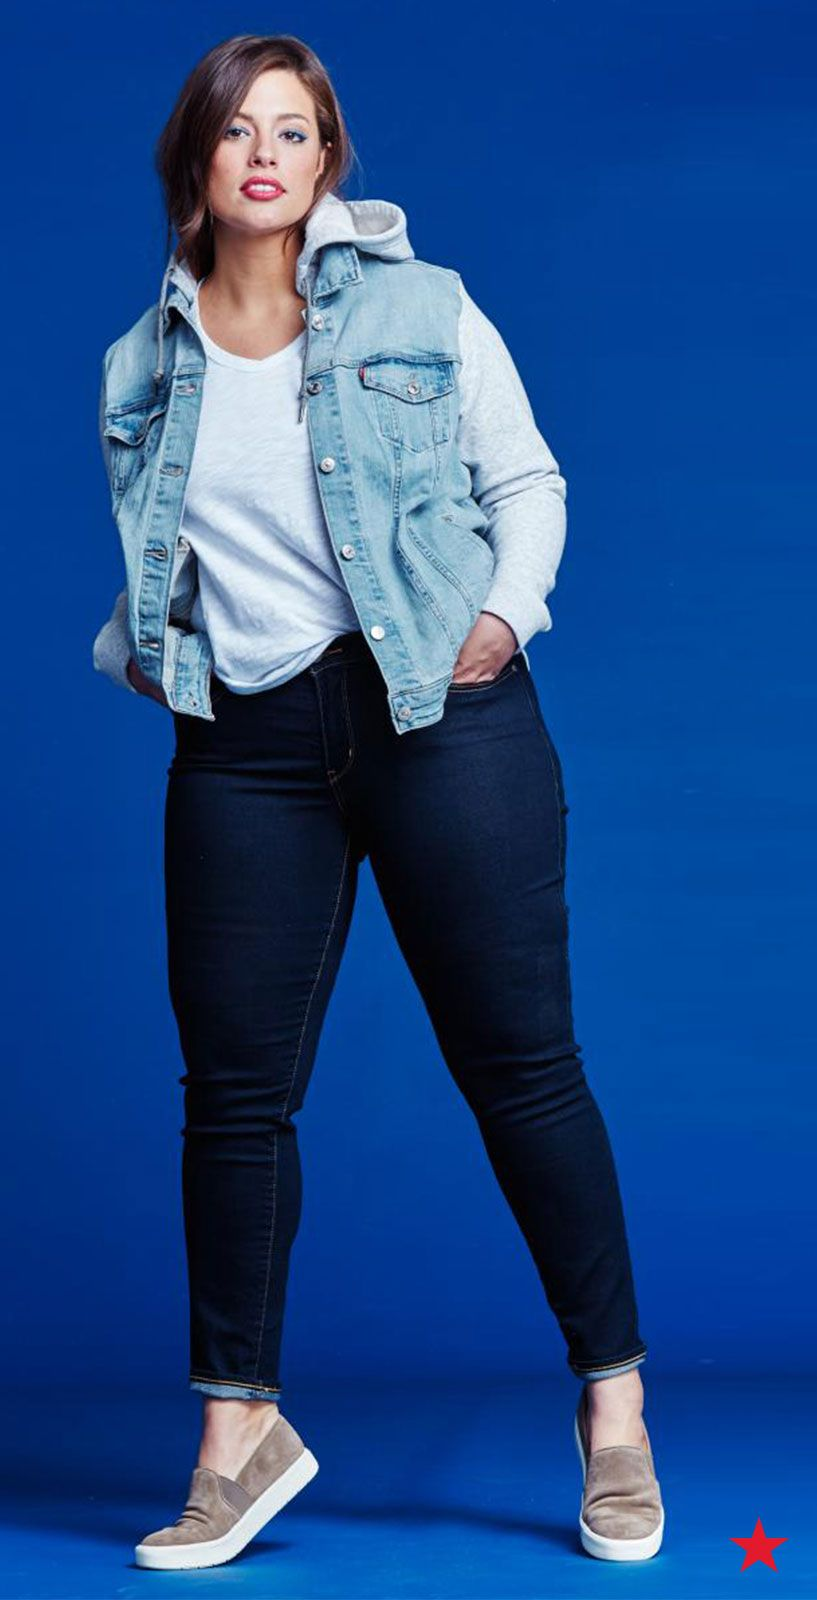 Levi Strauss Shop For And Buy Levi Strauss Online Casual Plus Size Outfits Plus Size Outfits Plus Size Jeans